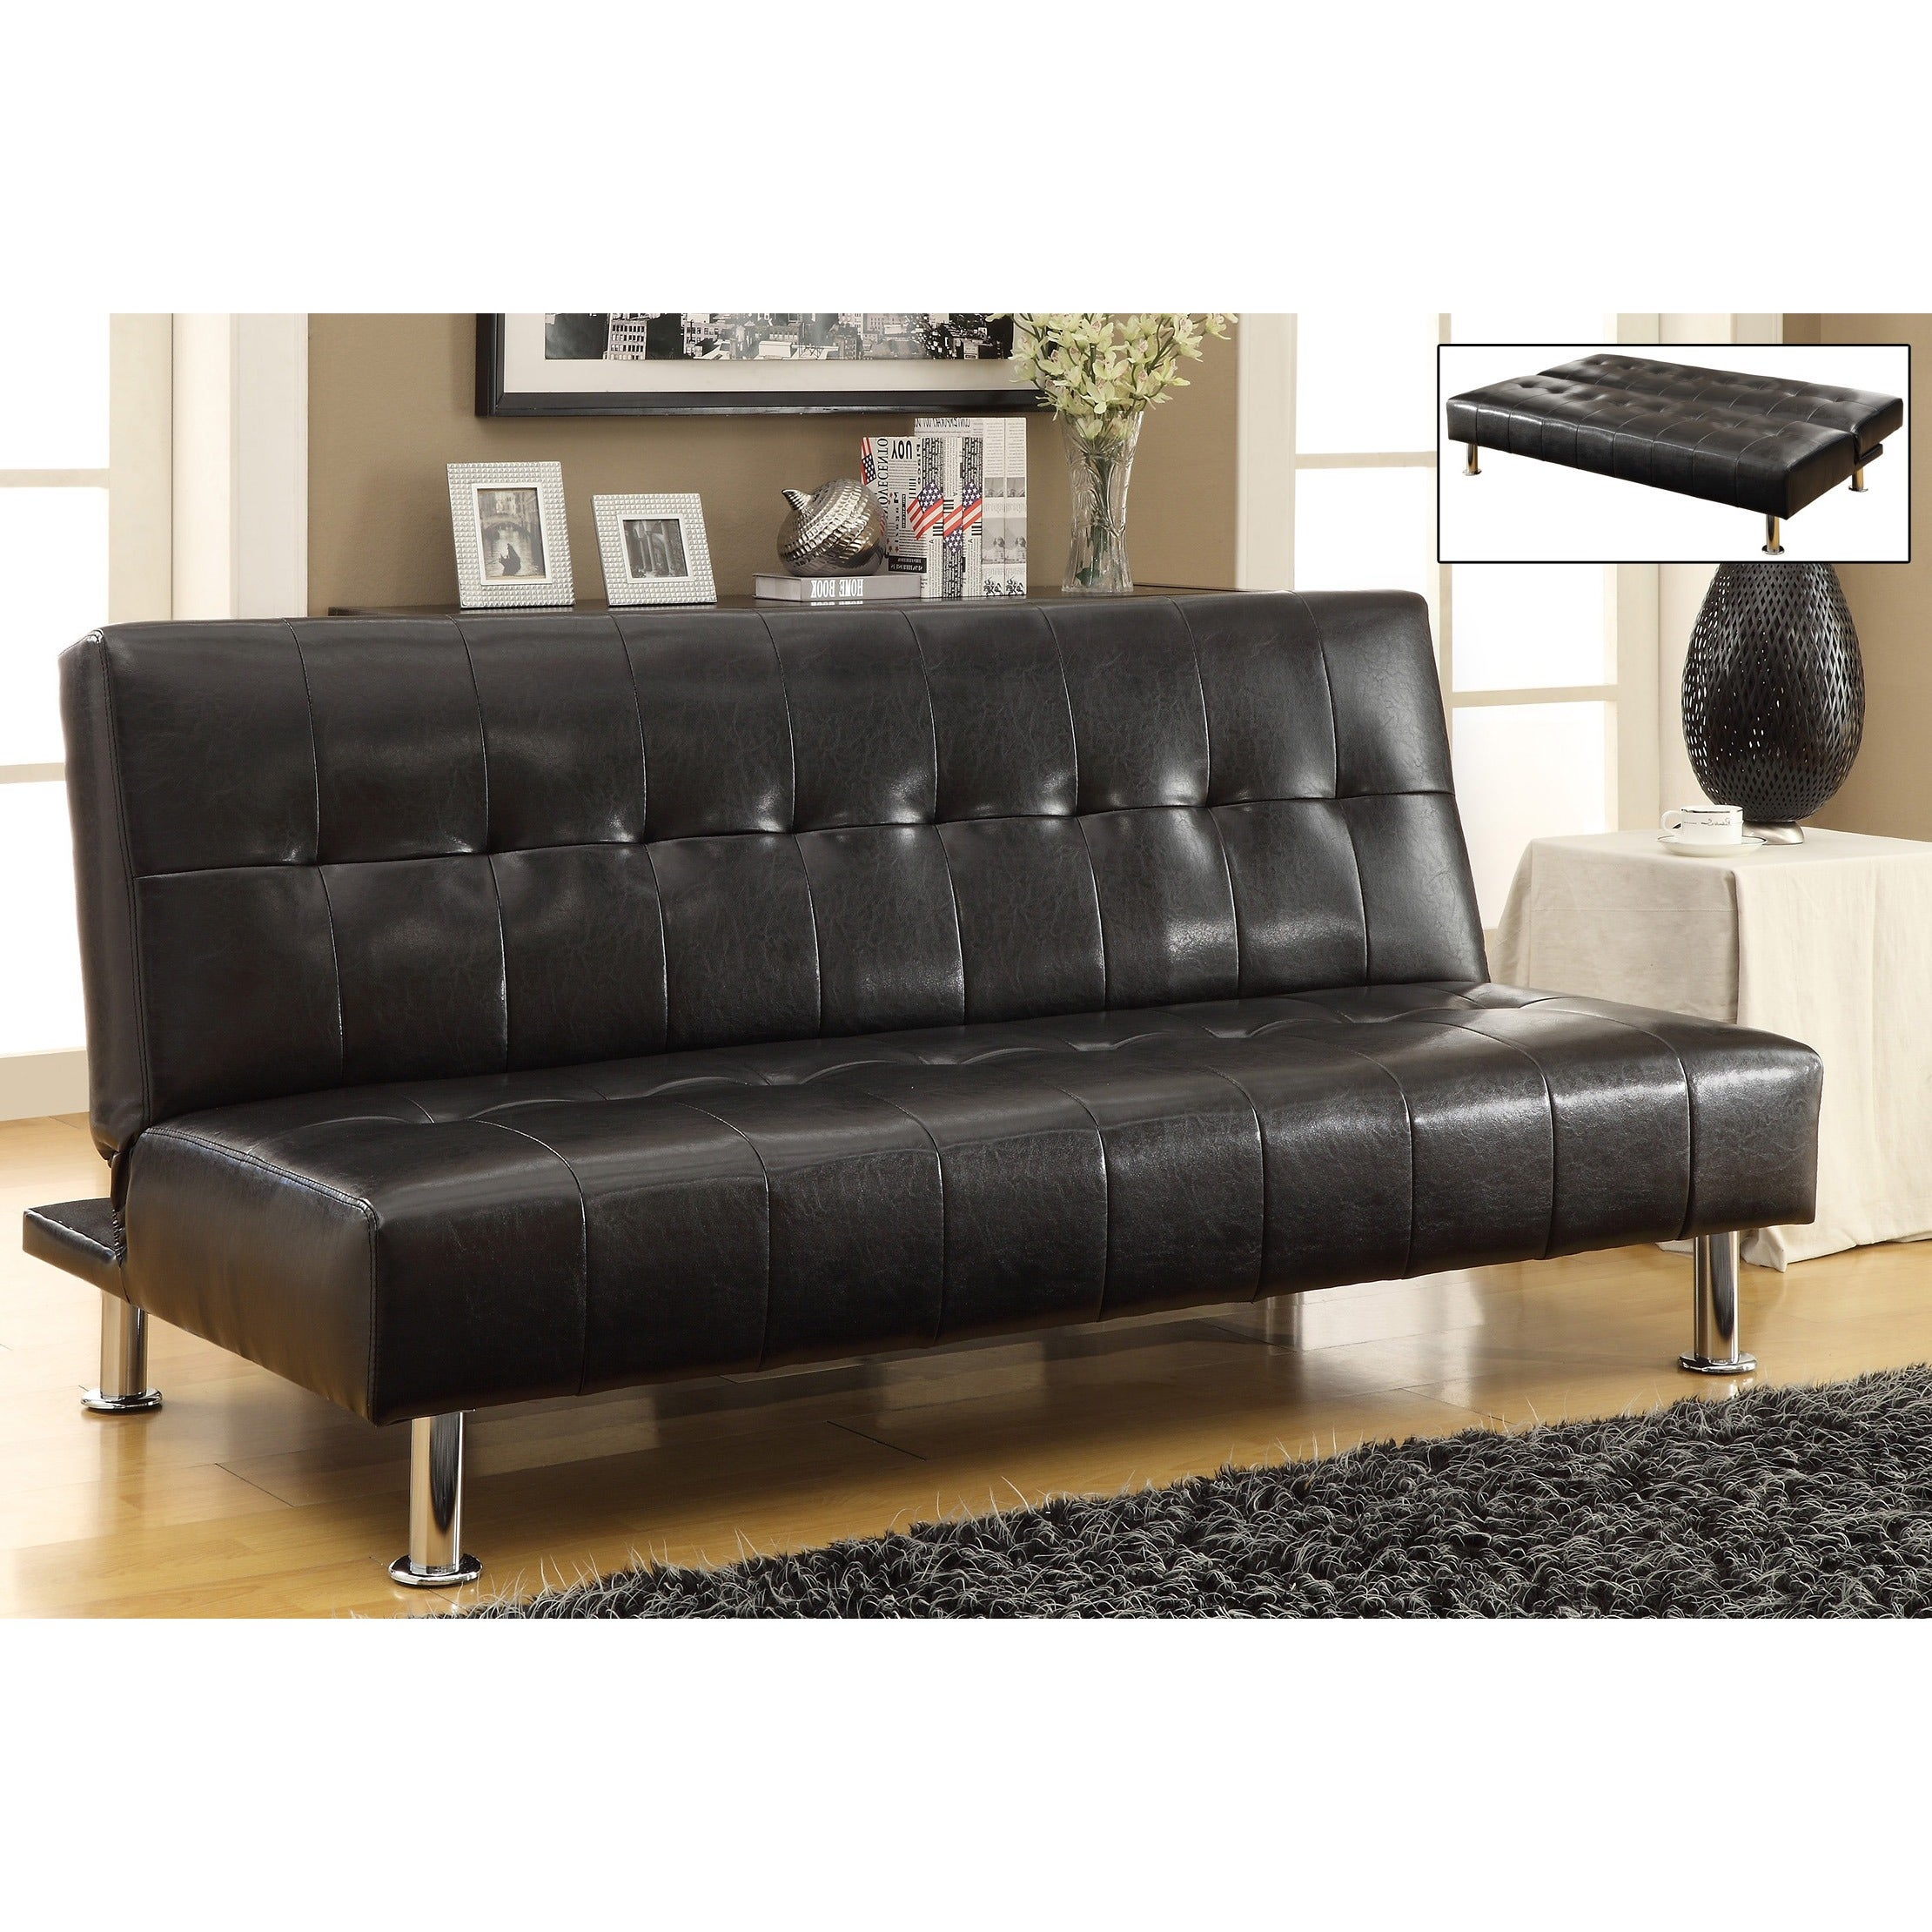 unique office sofa futon with your couch black for leather ideas